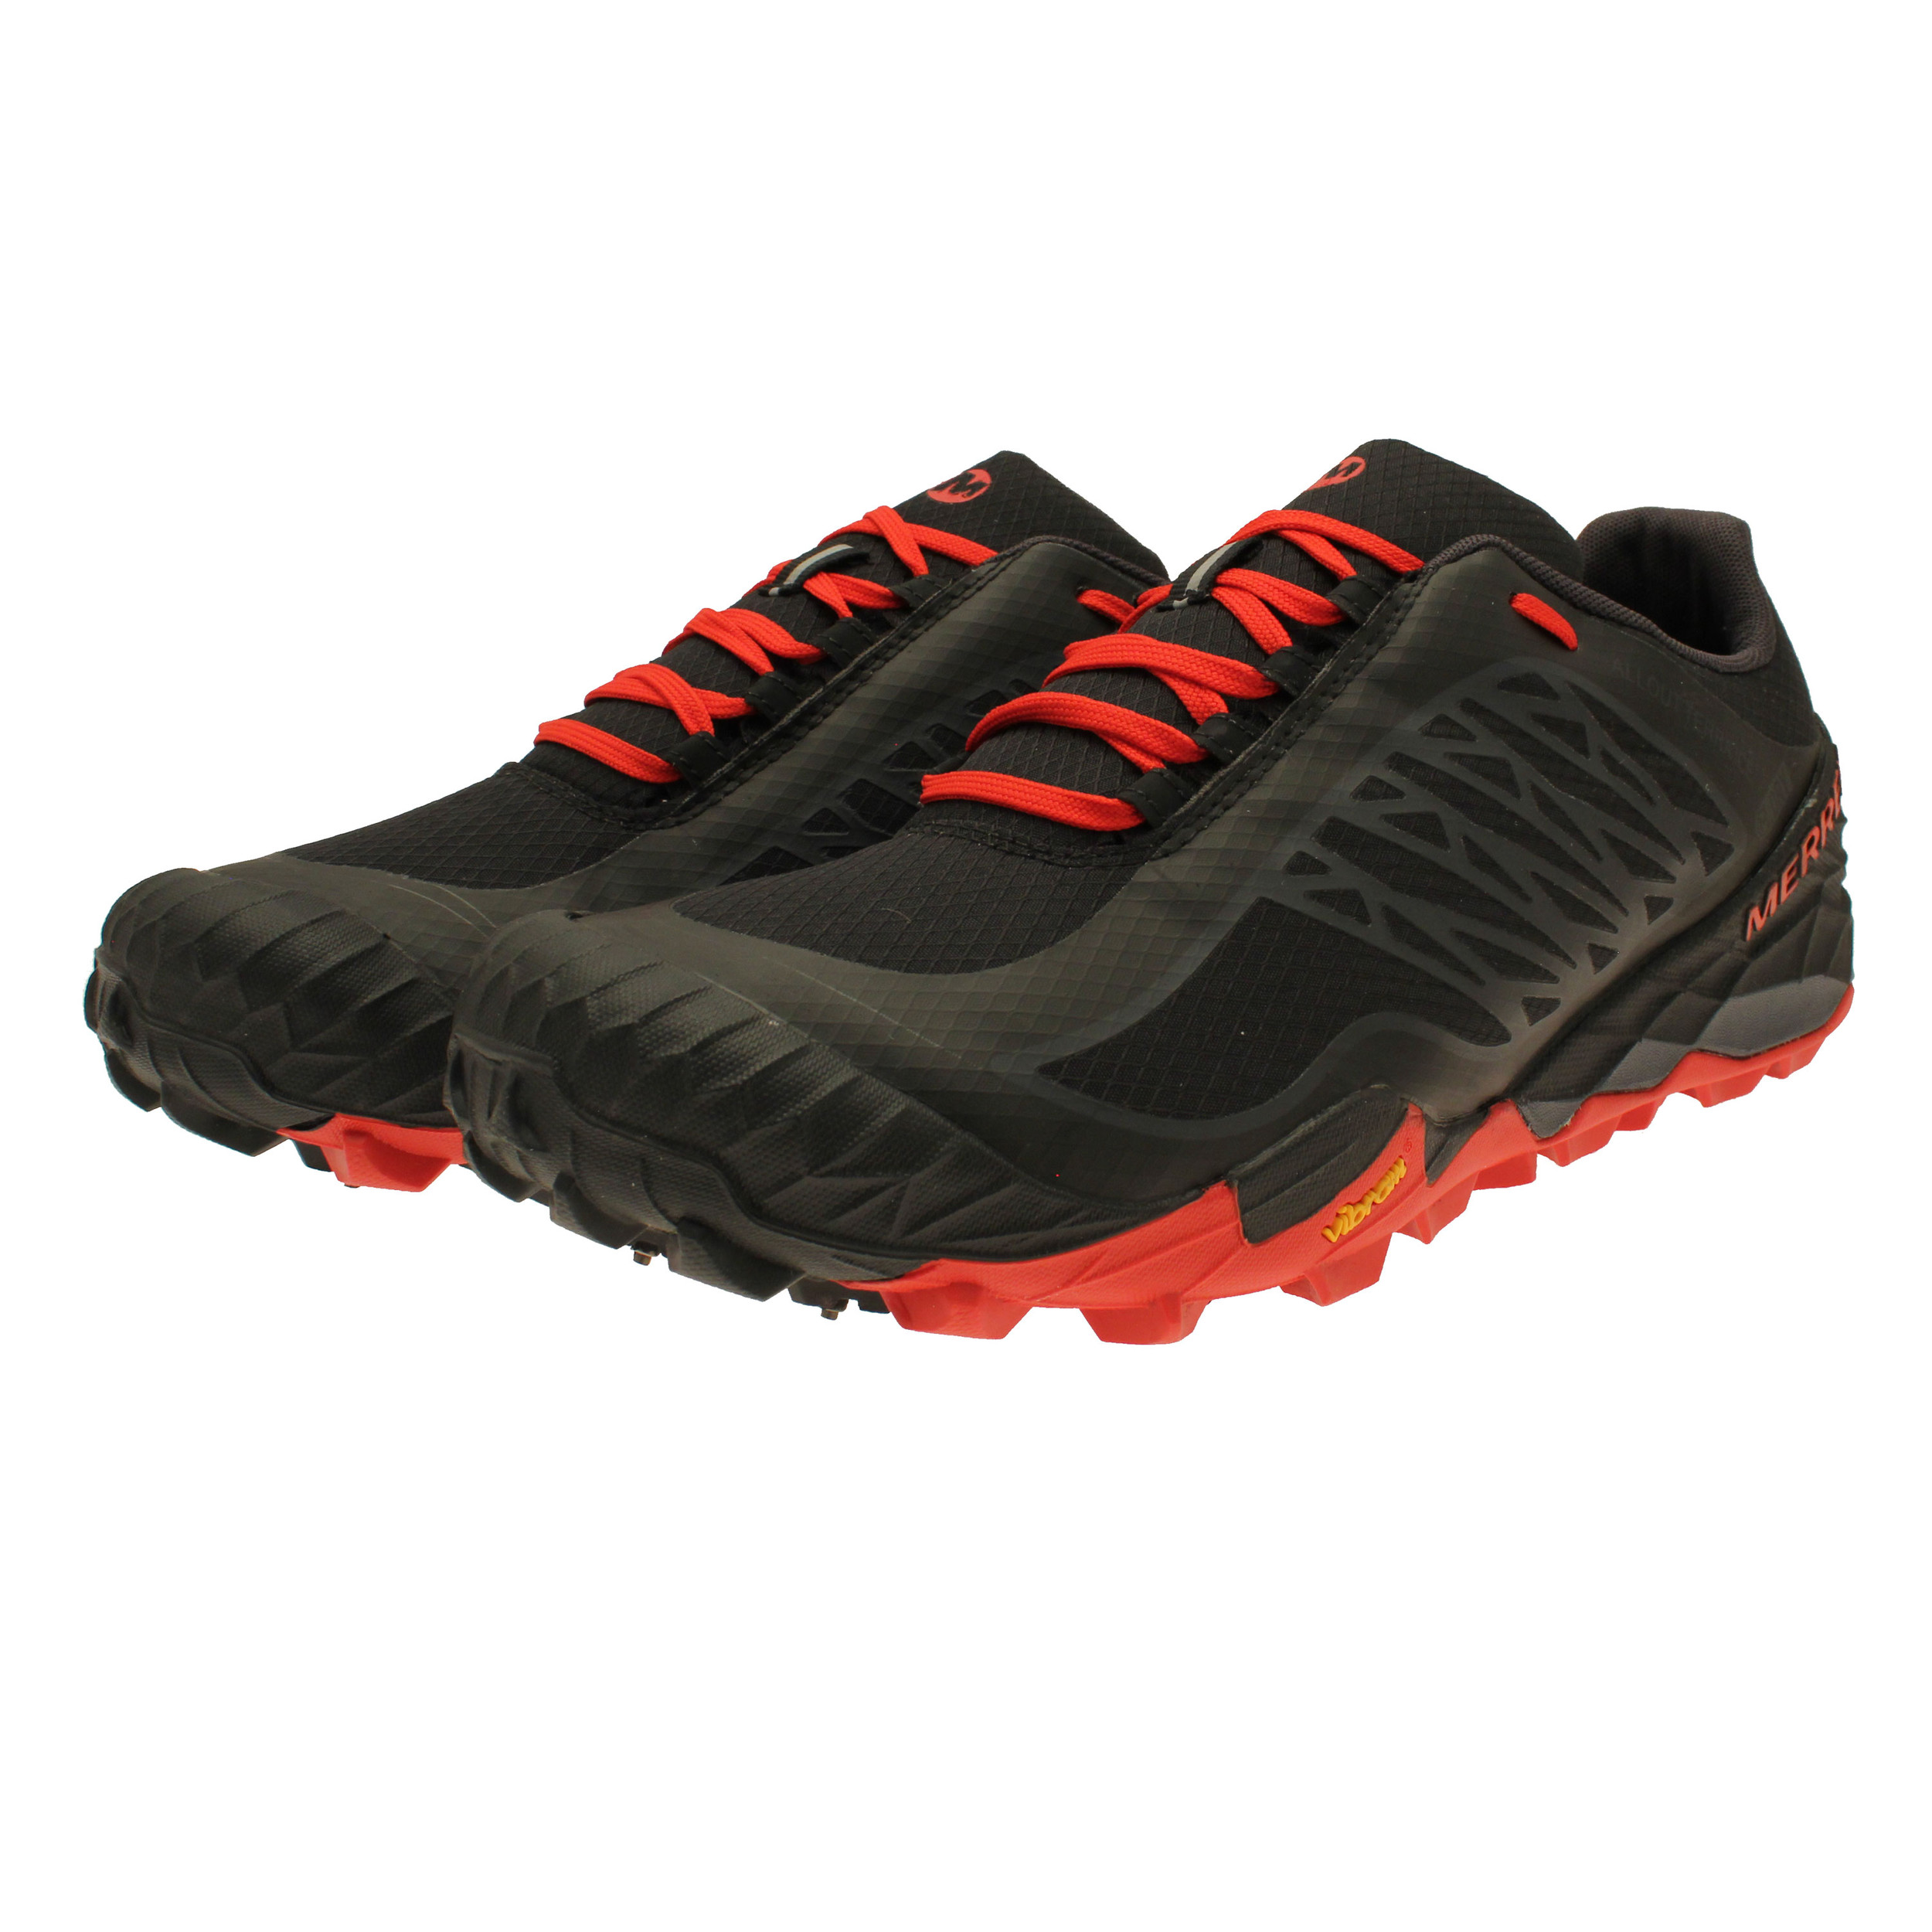 Most Durable Trail Running Shoes